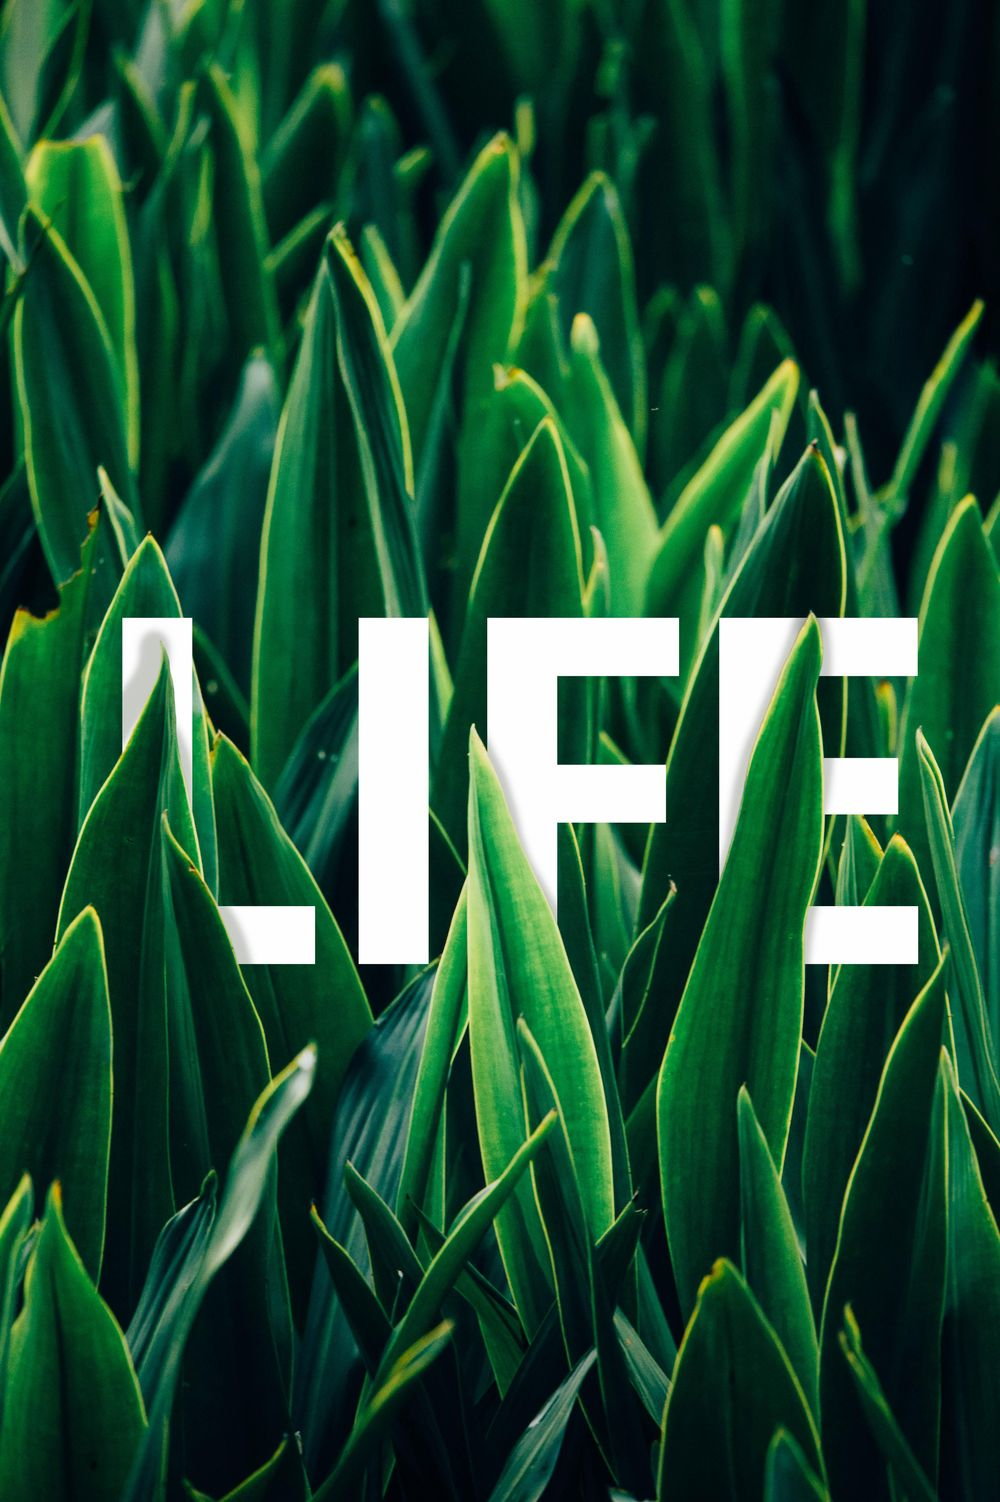 Life - image 1 - student project